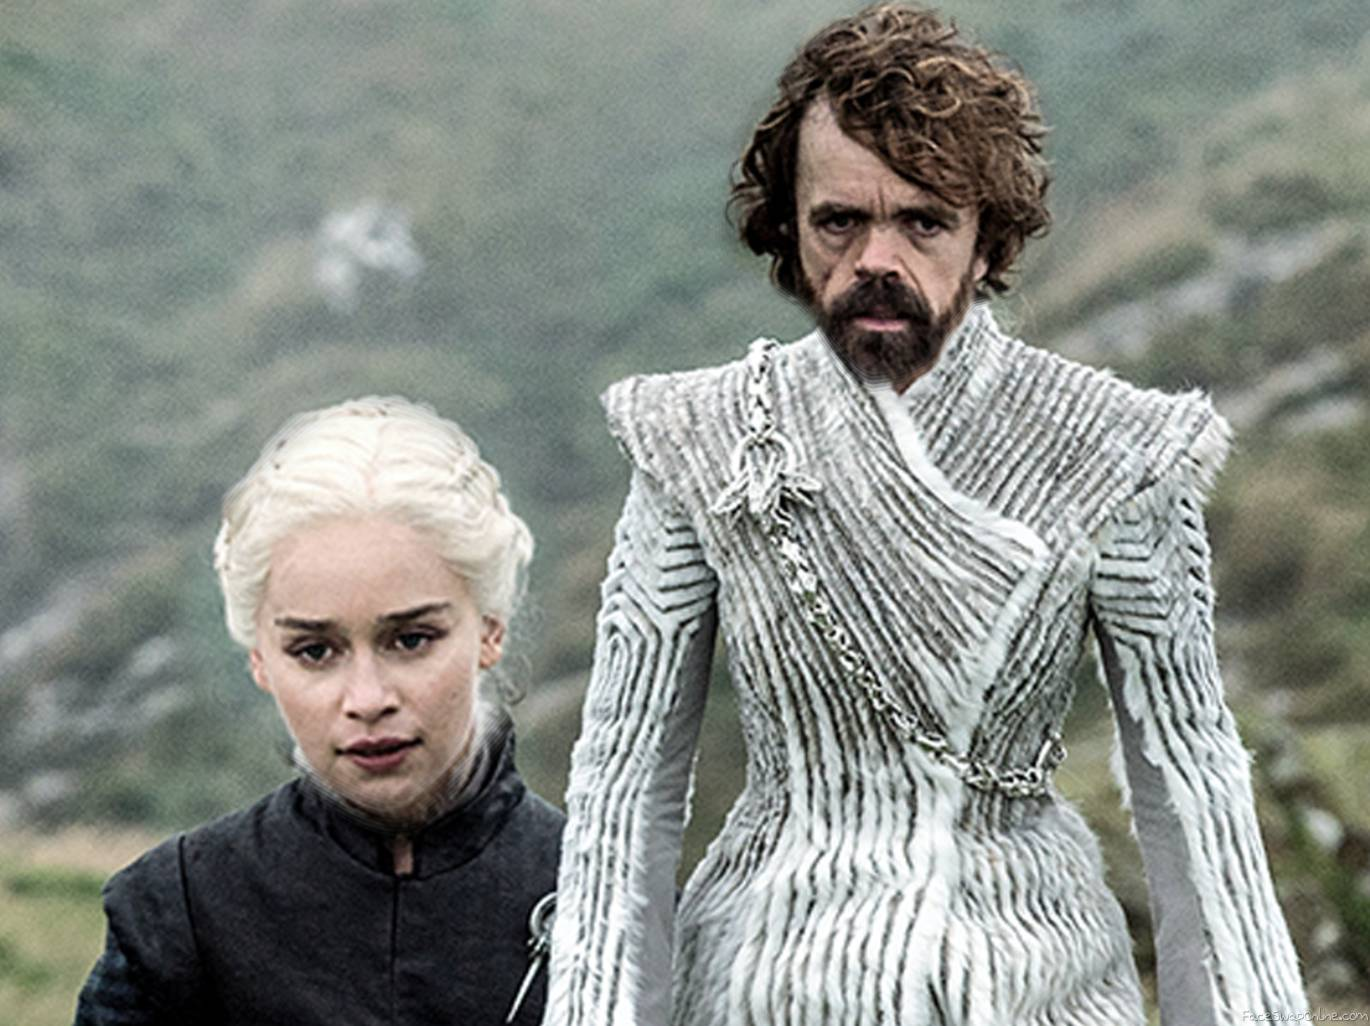 Tyrion Lannister and his mistress